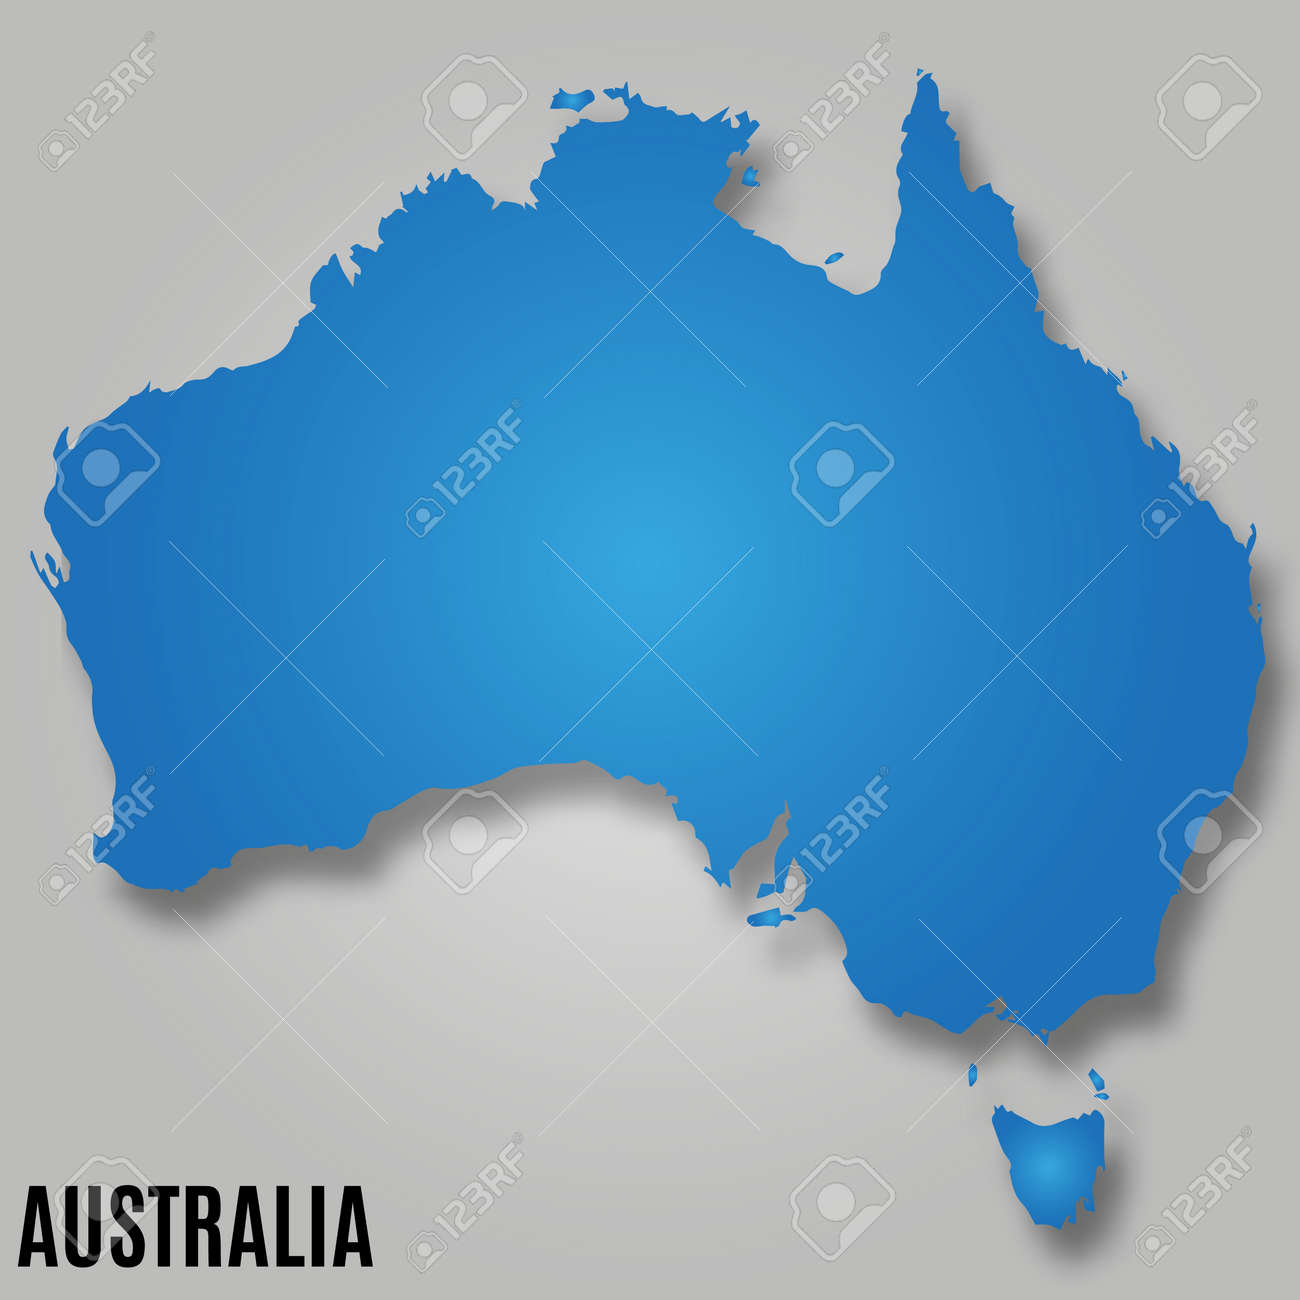 Map Australia Continent Country Vector Illustration Image Royalty ...